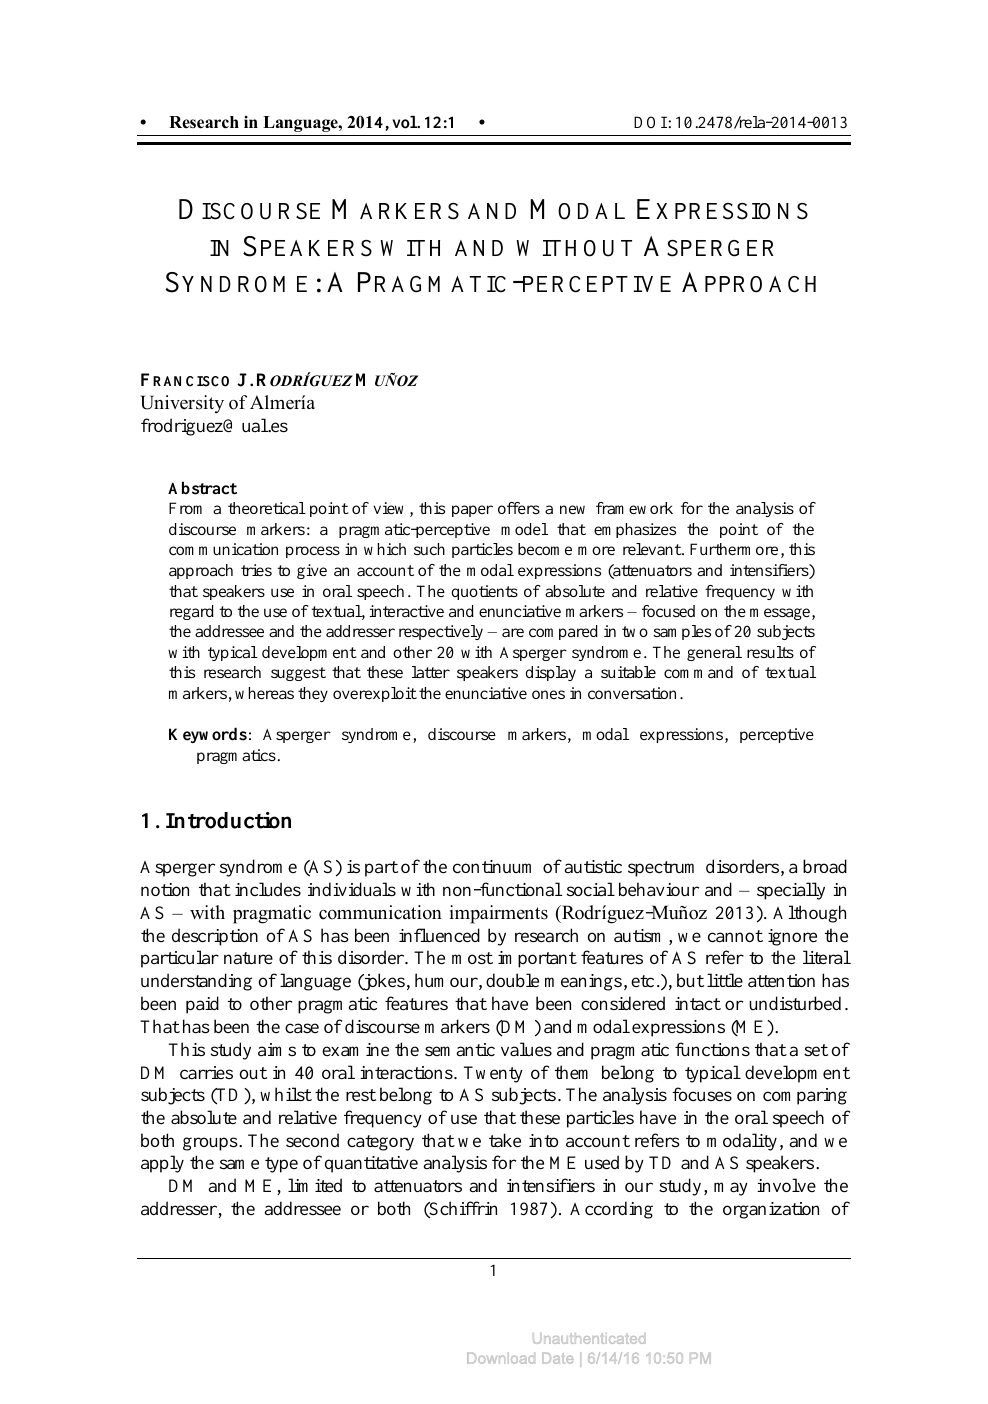 Discourse Markers And Modal Expressions In Speakers With And